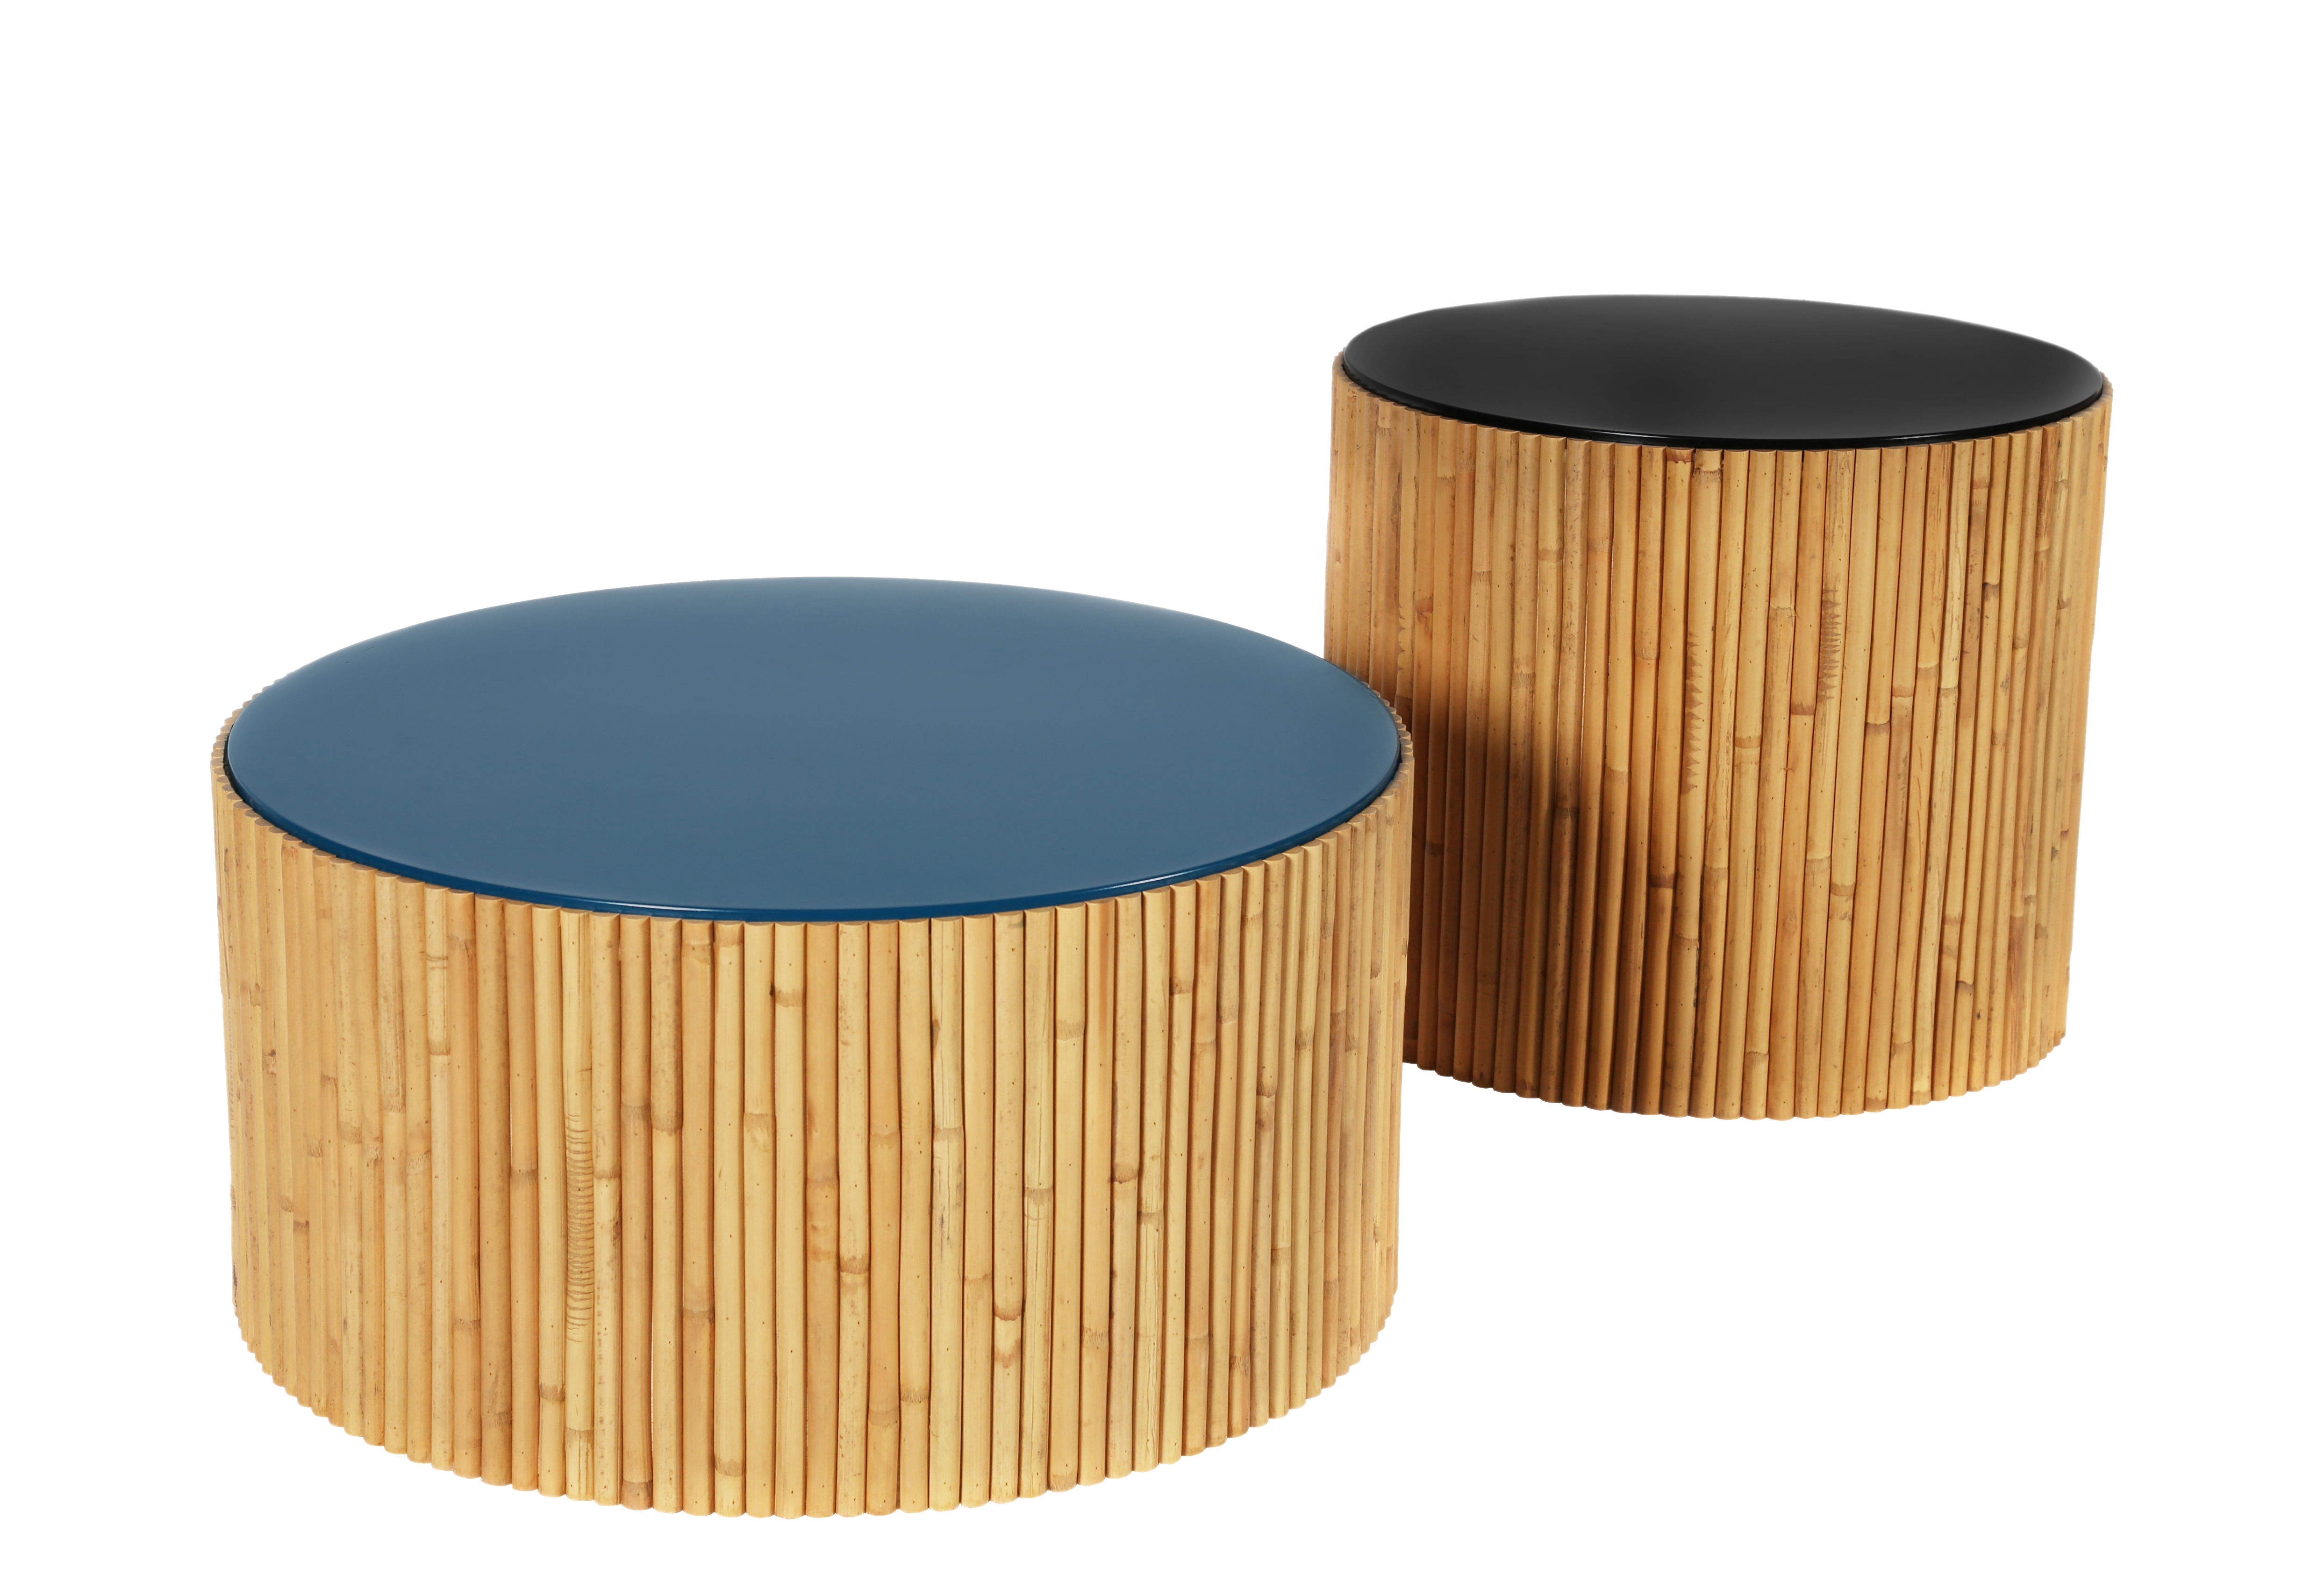 Tables De Salon En Rotin Table Basse Riviera Duo Set De 2 Ø 60 Ø 45 Cm Maison Sarah Lavoine